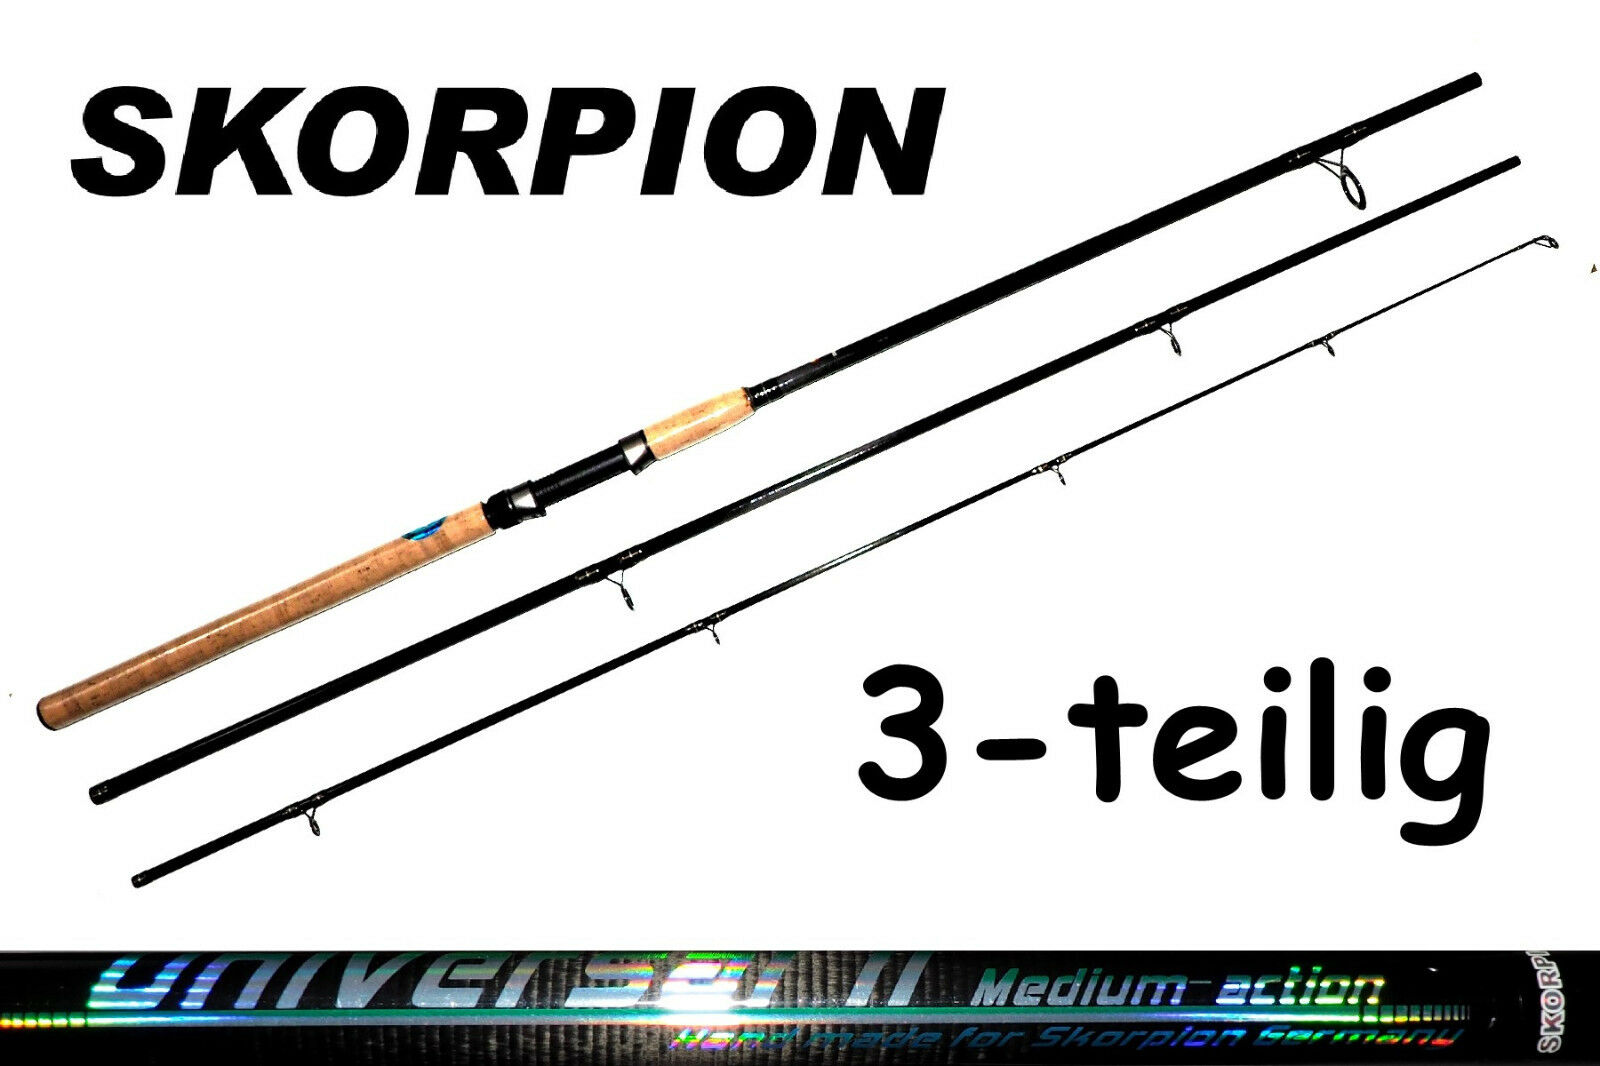 Scorpion universal 2   3-piece carbon fibre Rod all-round Rod carbon Spinning Rod